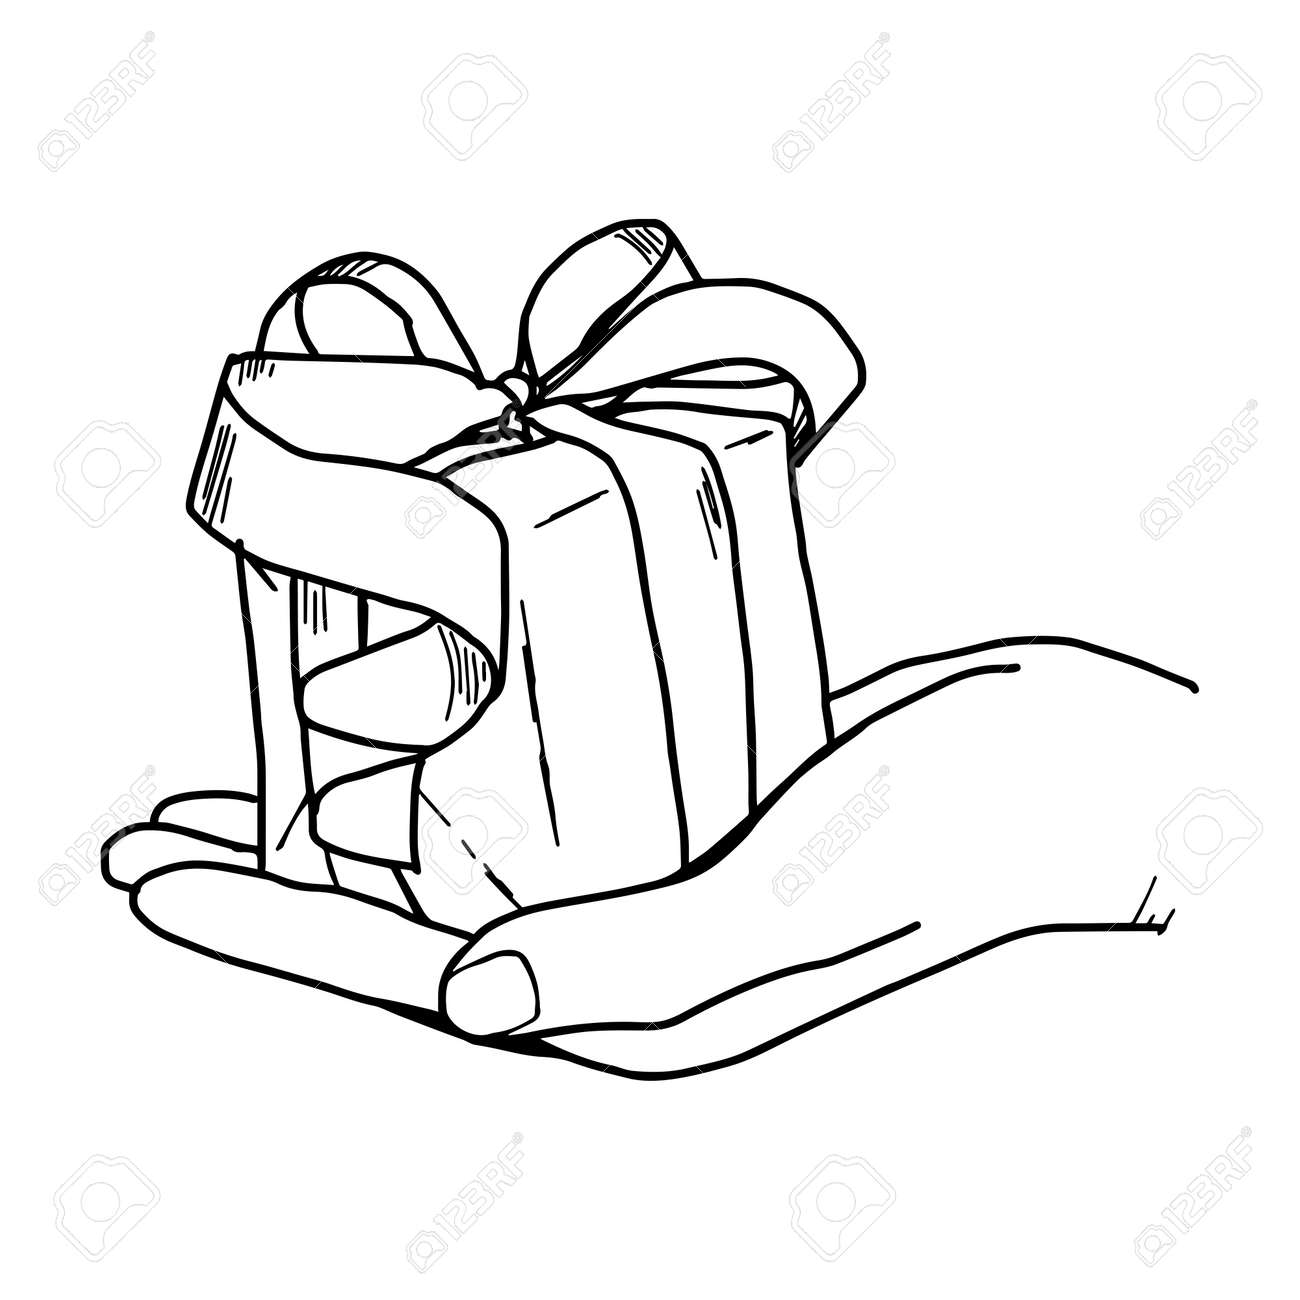 illustation vector hand drawn doodle of hand holding a gift box